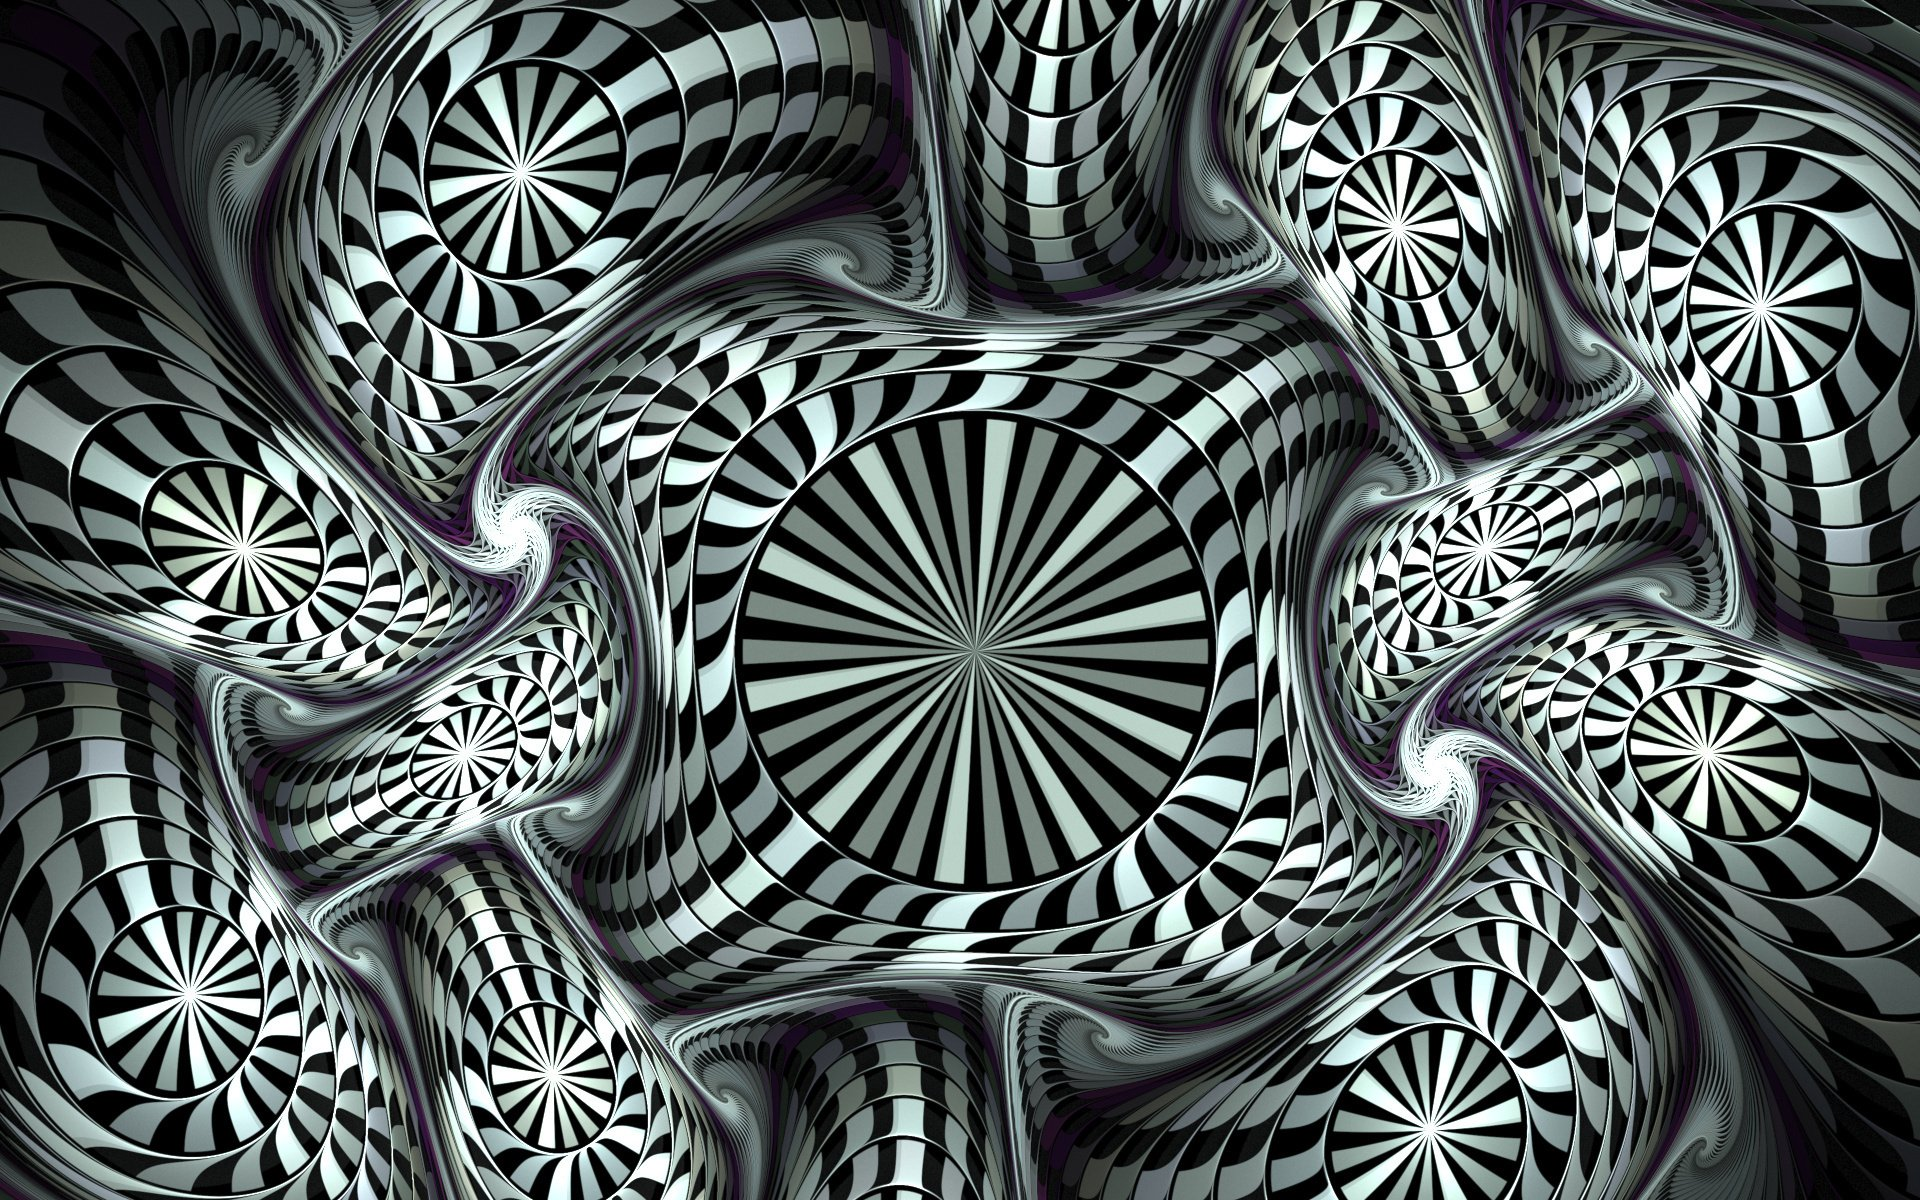 CGI - 3D  Fractal Black & White Digital Digital Art Abstract Wallpaper